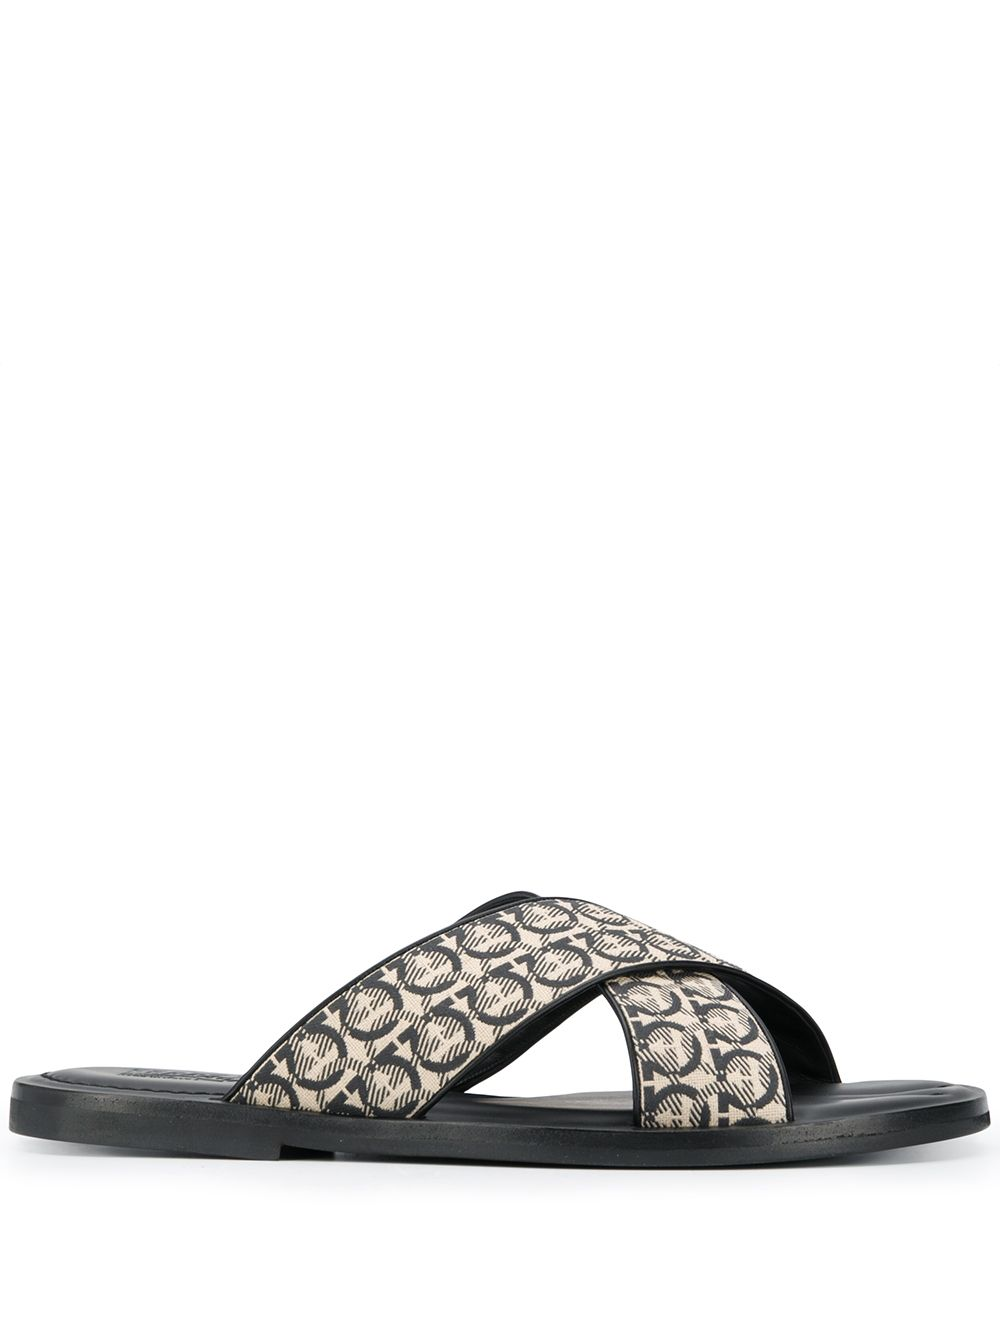 Sion Leather Sandals